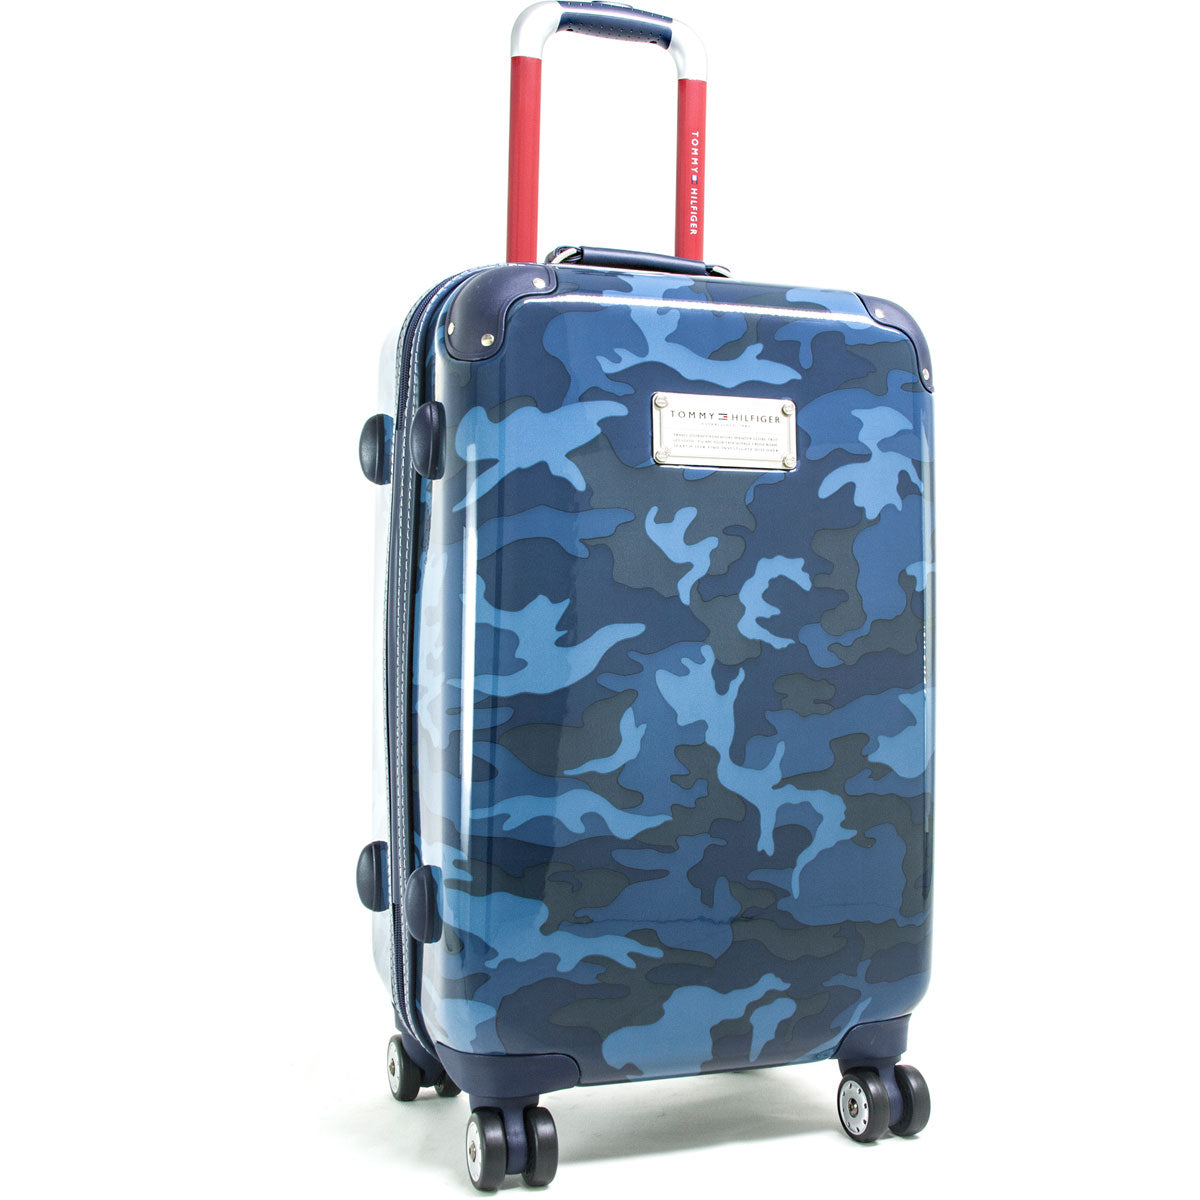 Tommy Hilfiger East Coast Camo 28in Upright Spinner